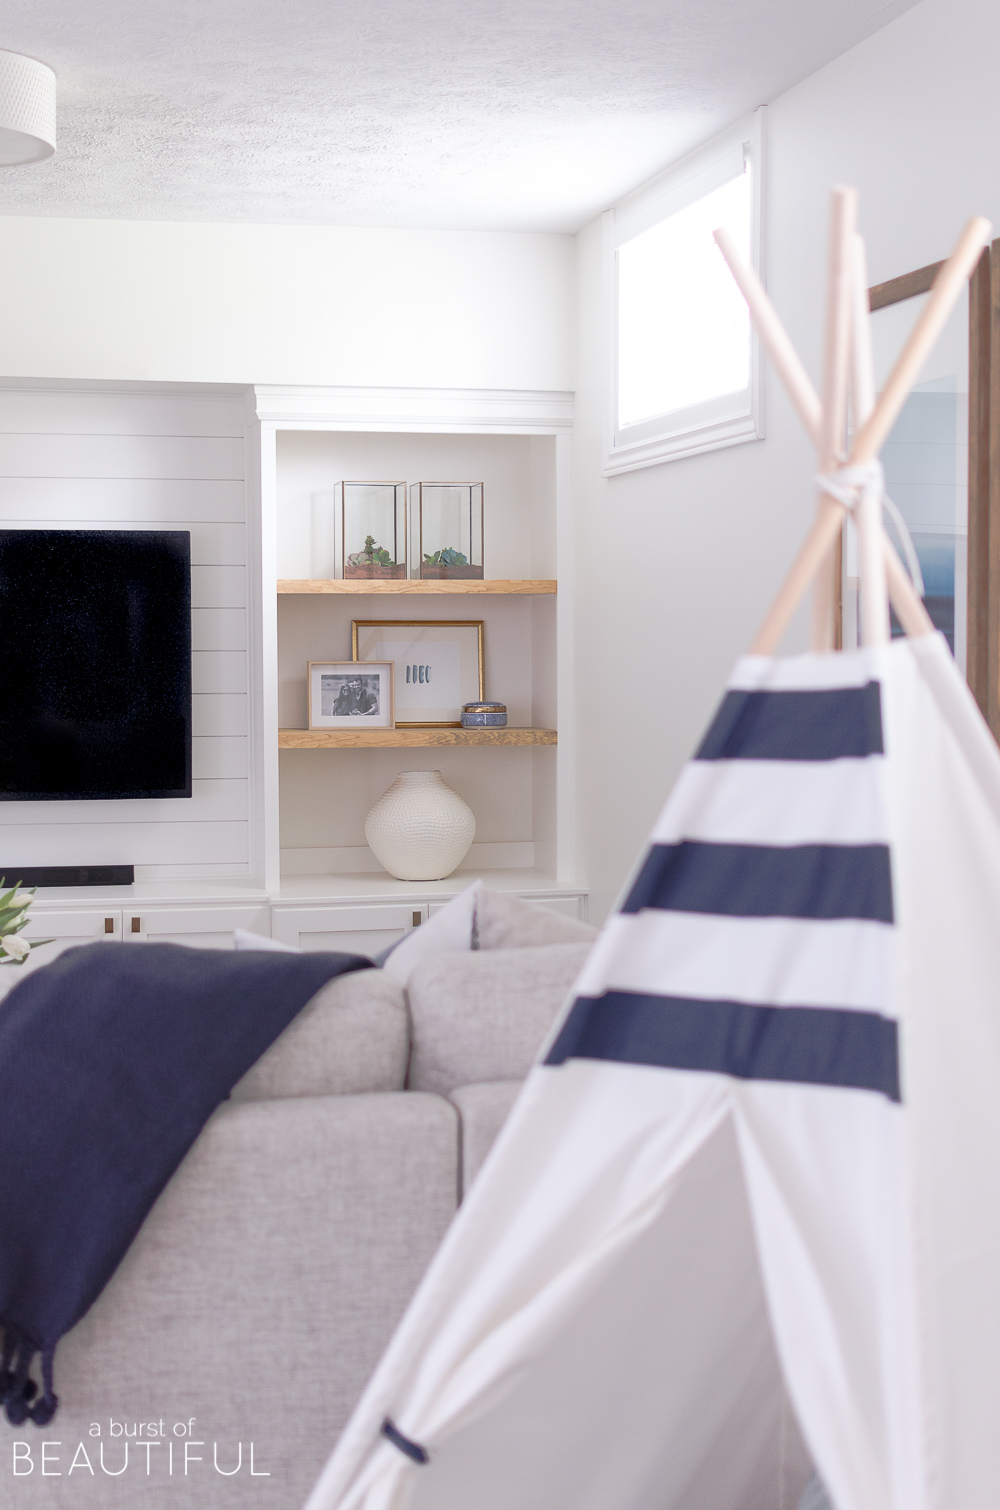 A bright family room features the perfect mix of traditional and modern design elements, including a mid-century modern sofa, open shelving and shiplap walls.